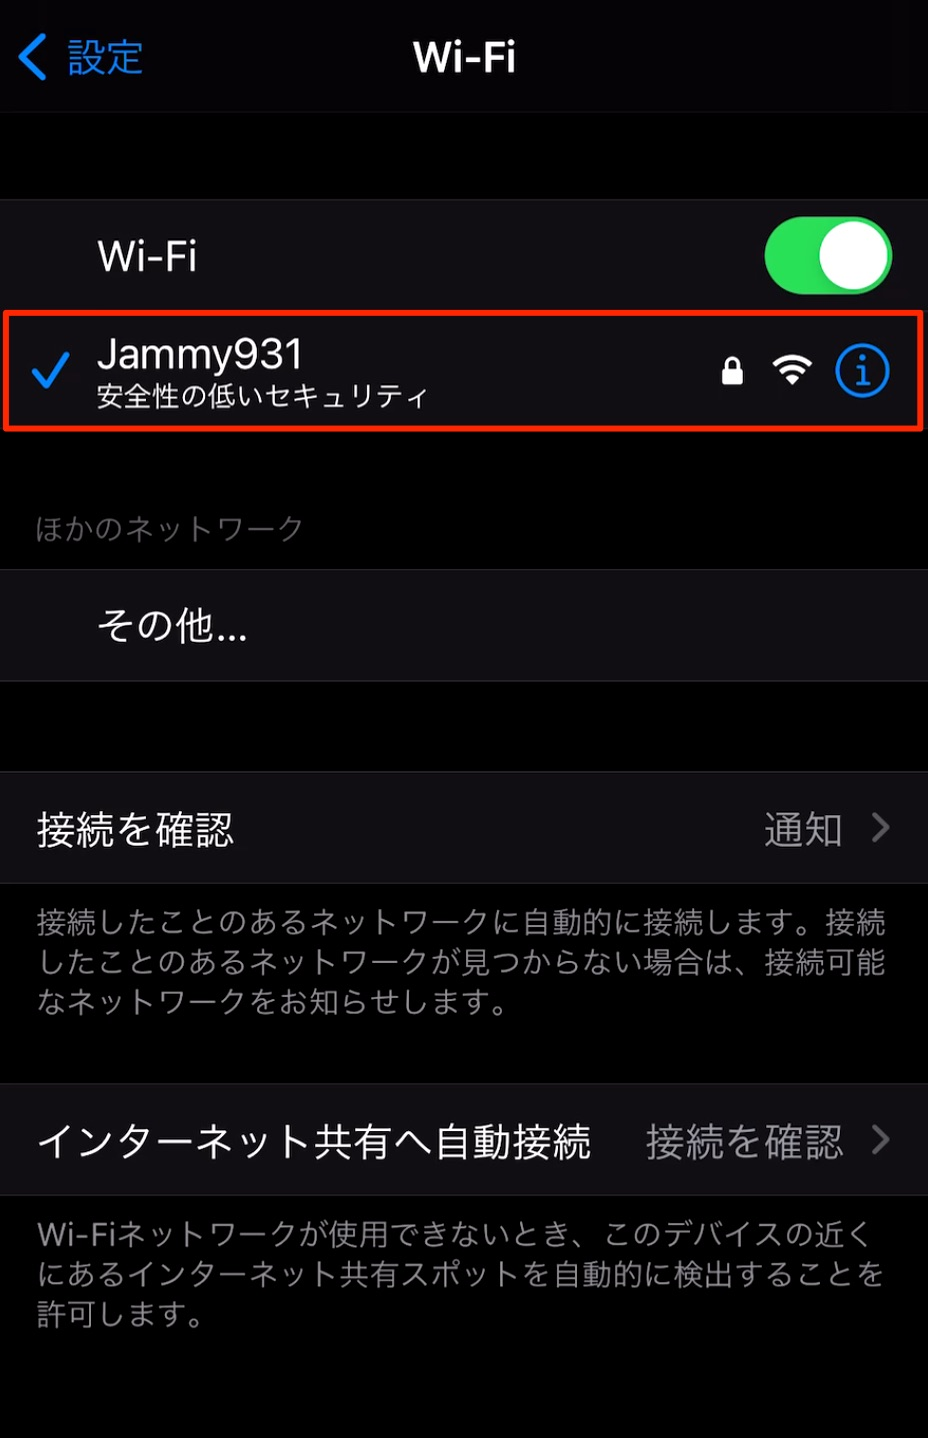 Jammyb_Wifi_Setting